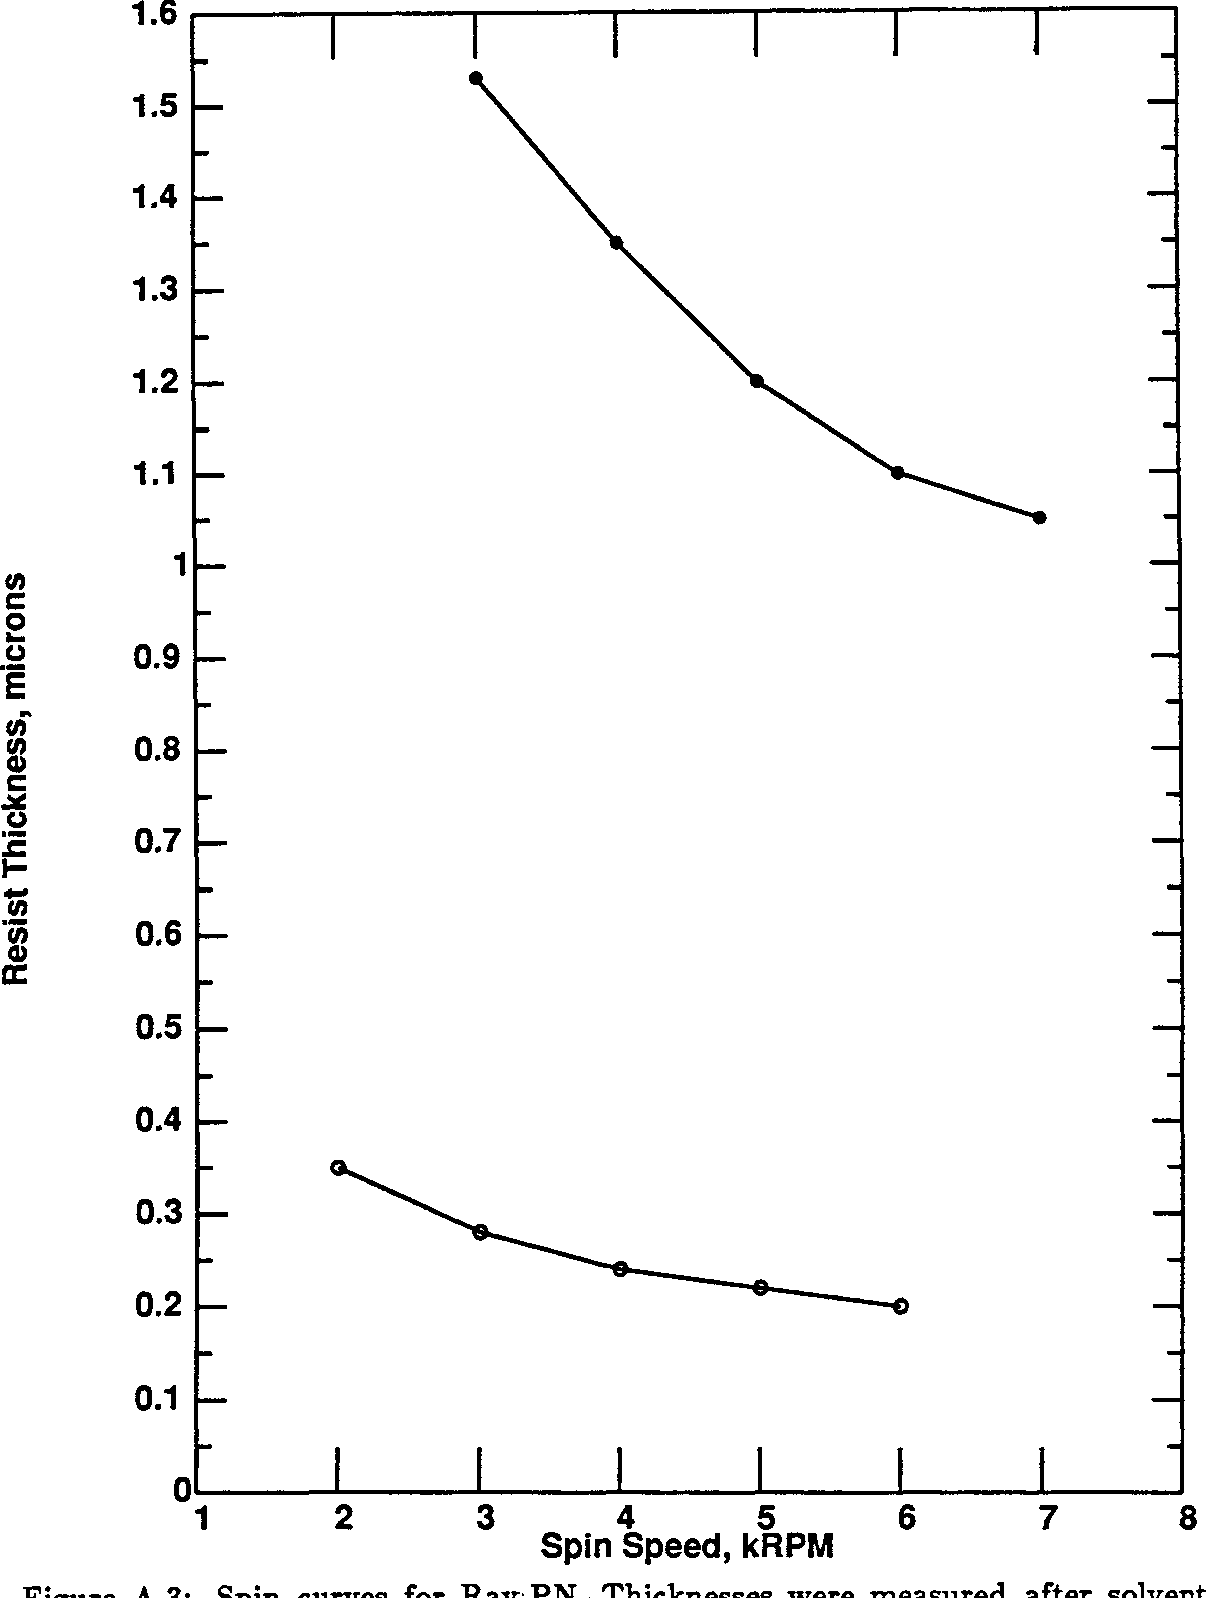 Figure A.3: Spin curves for drive-off bake. Bottom curve